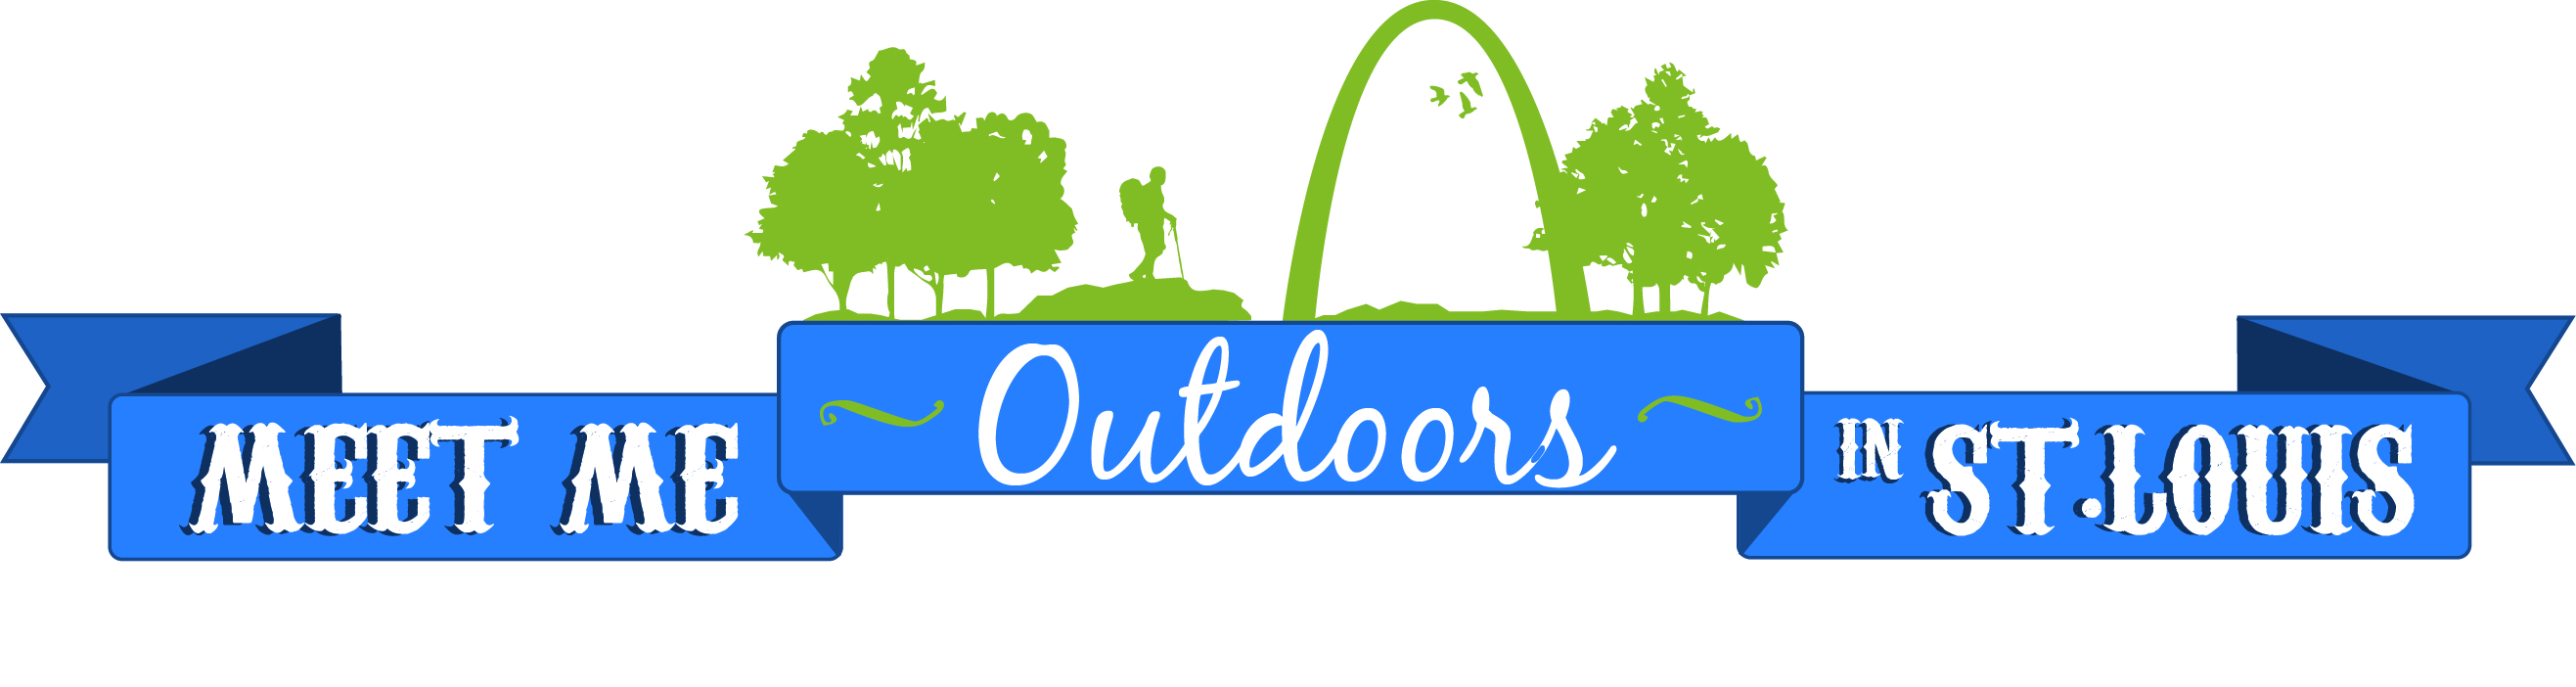 Meet Me Outdoors in St. Louis horizontal logo